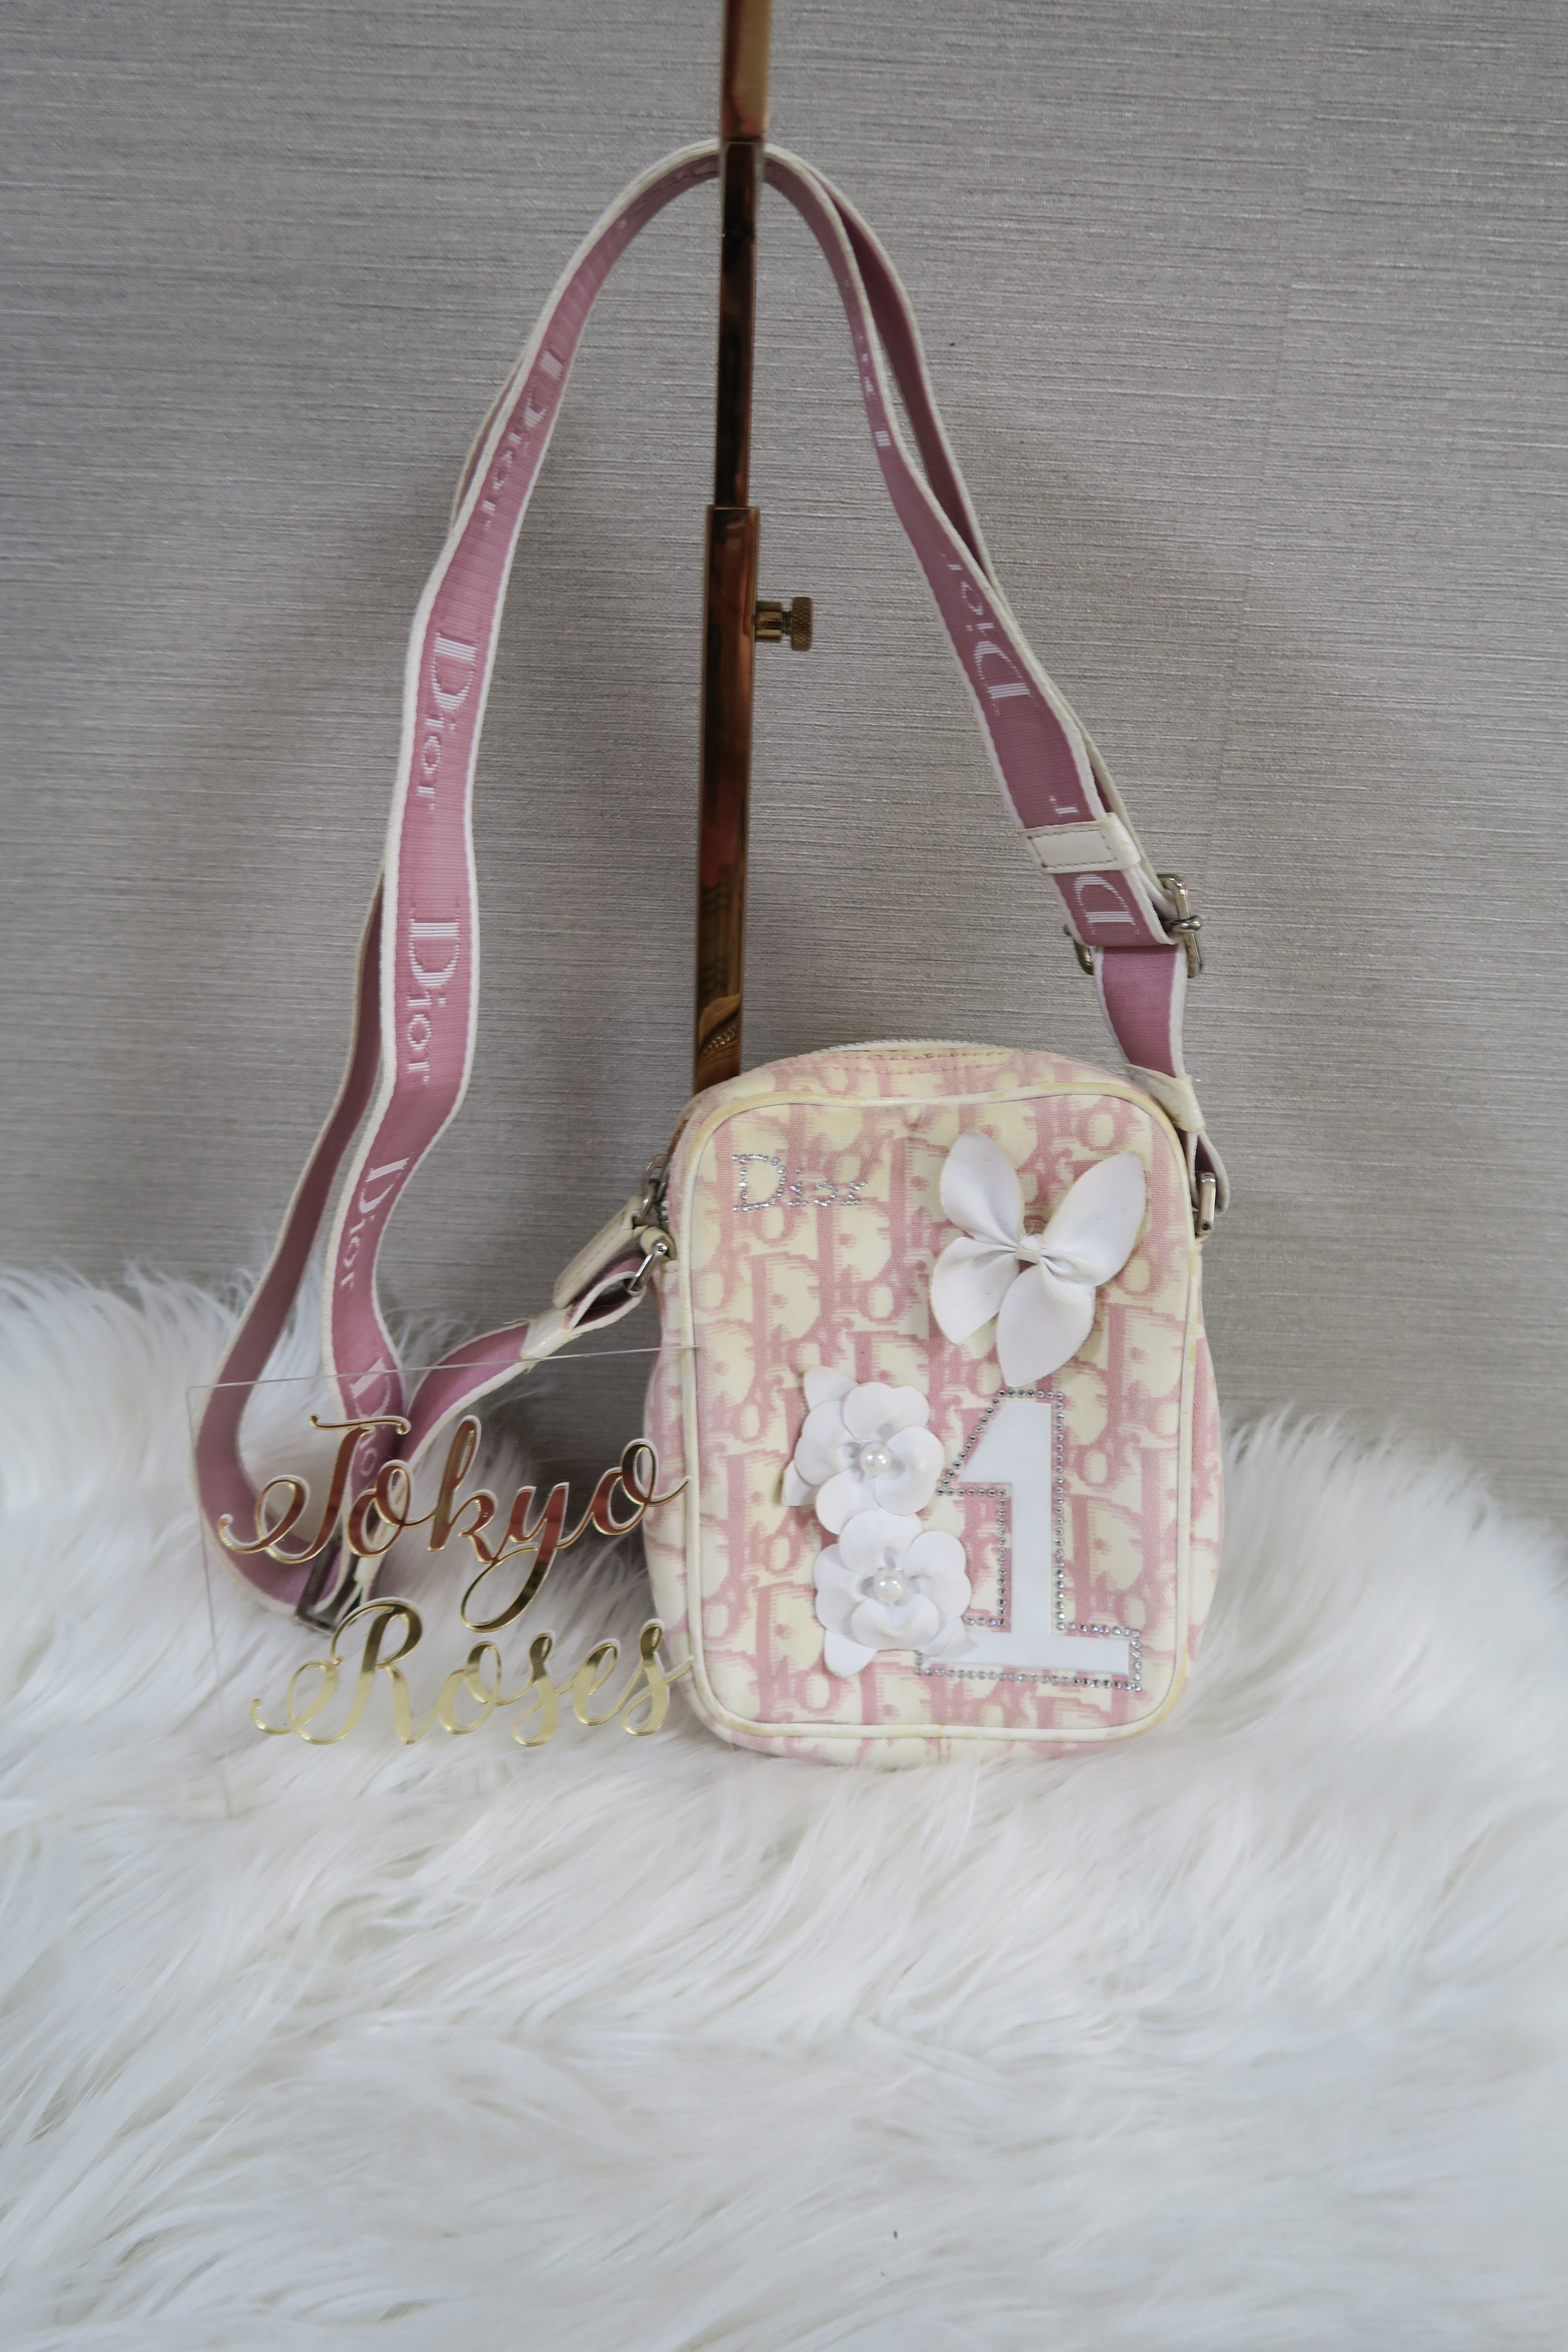 50bbdf21ef58 Christian Dior Pink Trotter Girly Crossbody Bag Monogram in 2019 ...